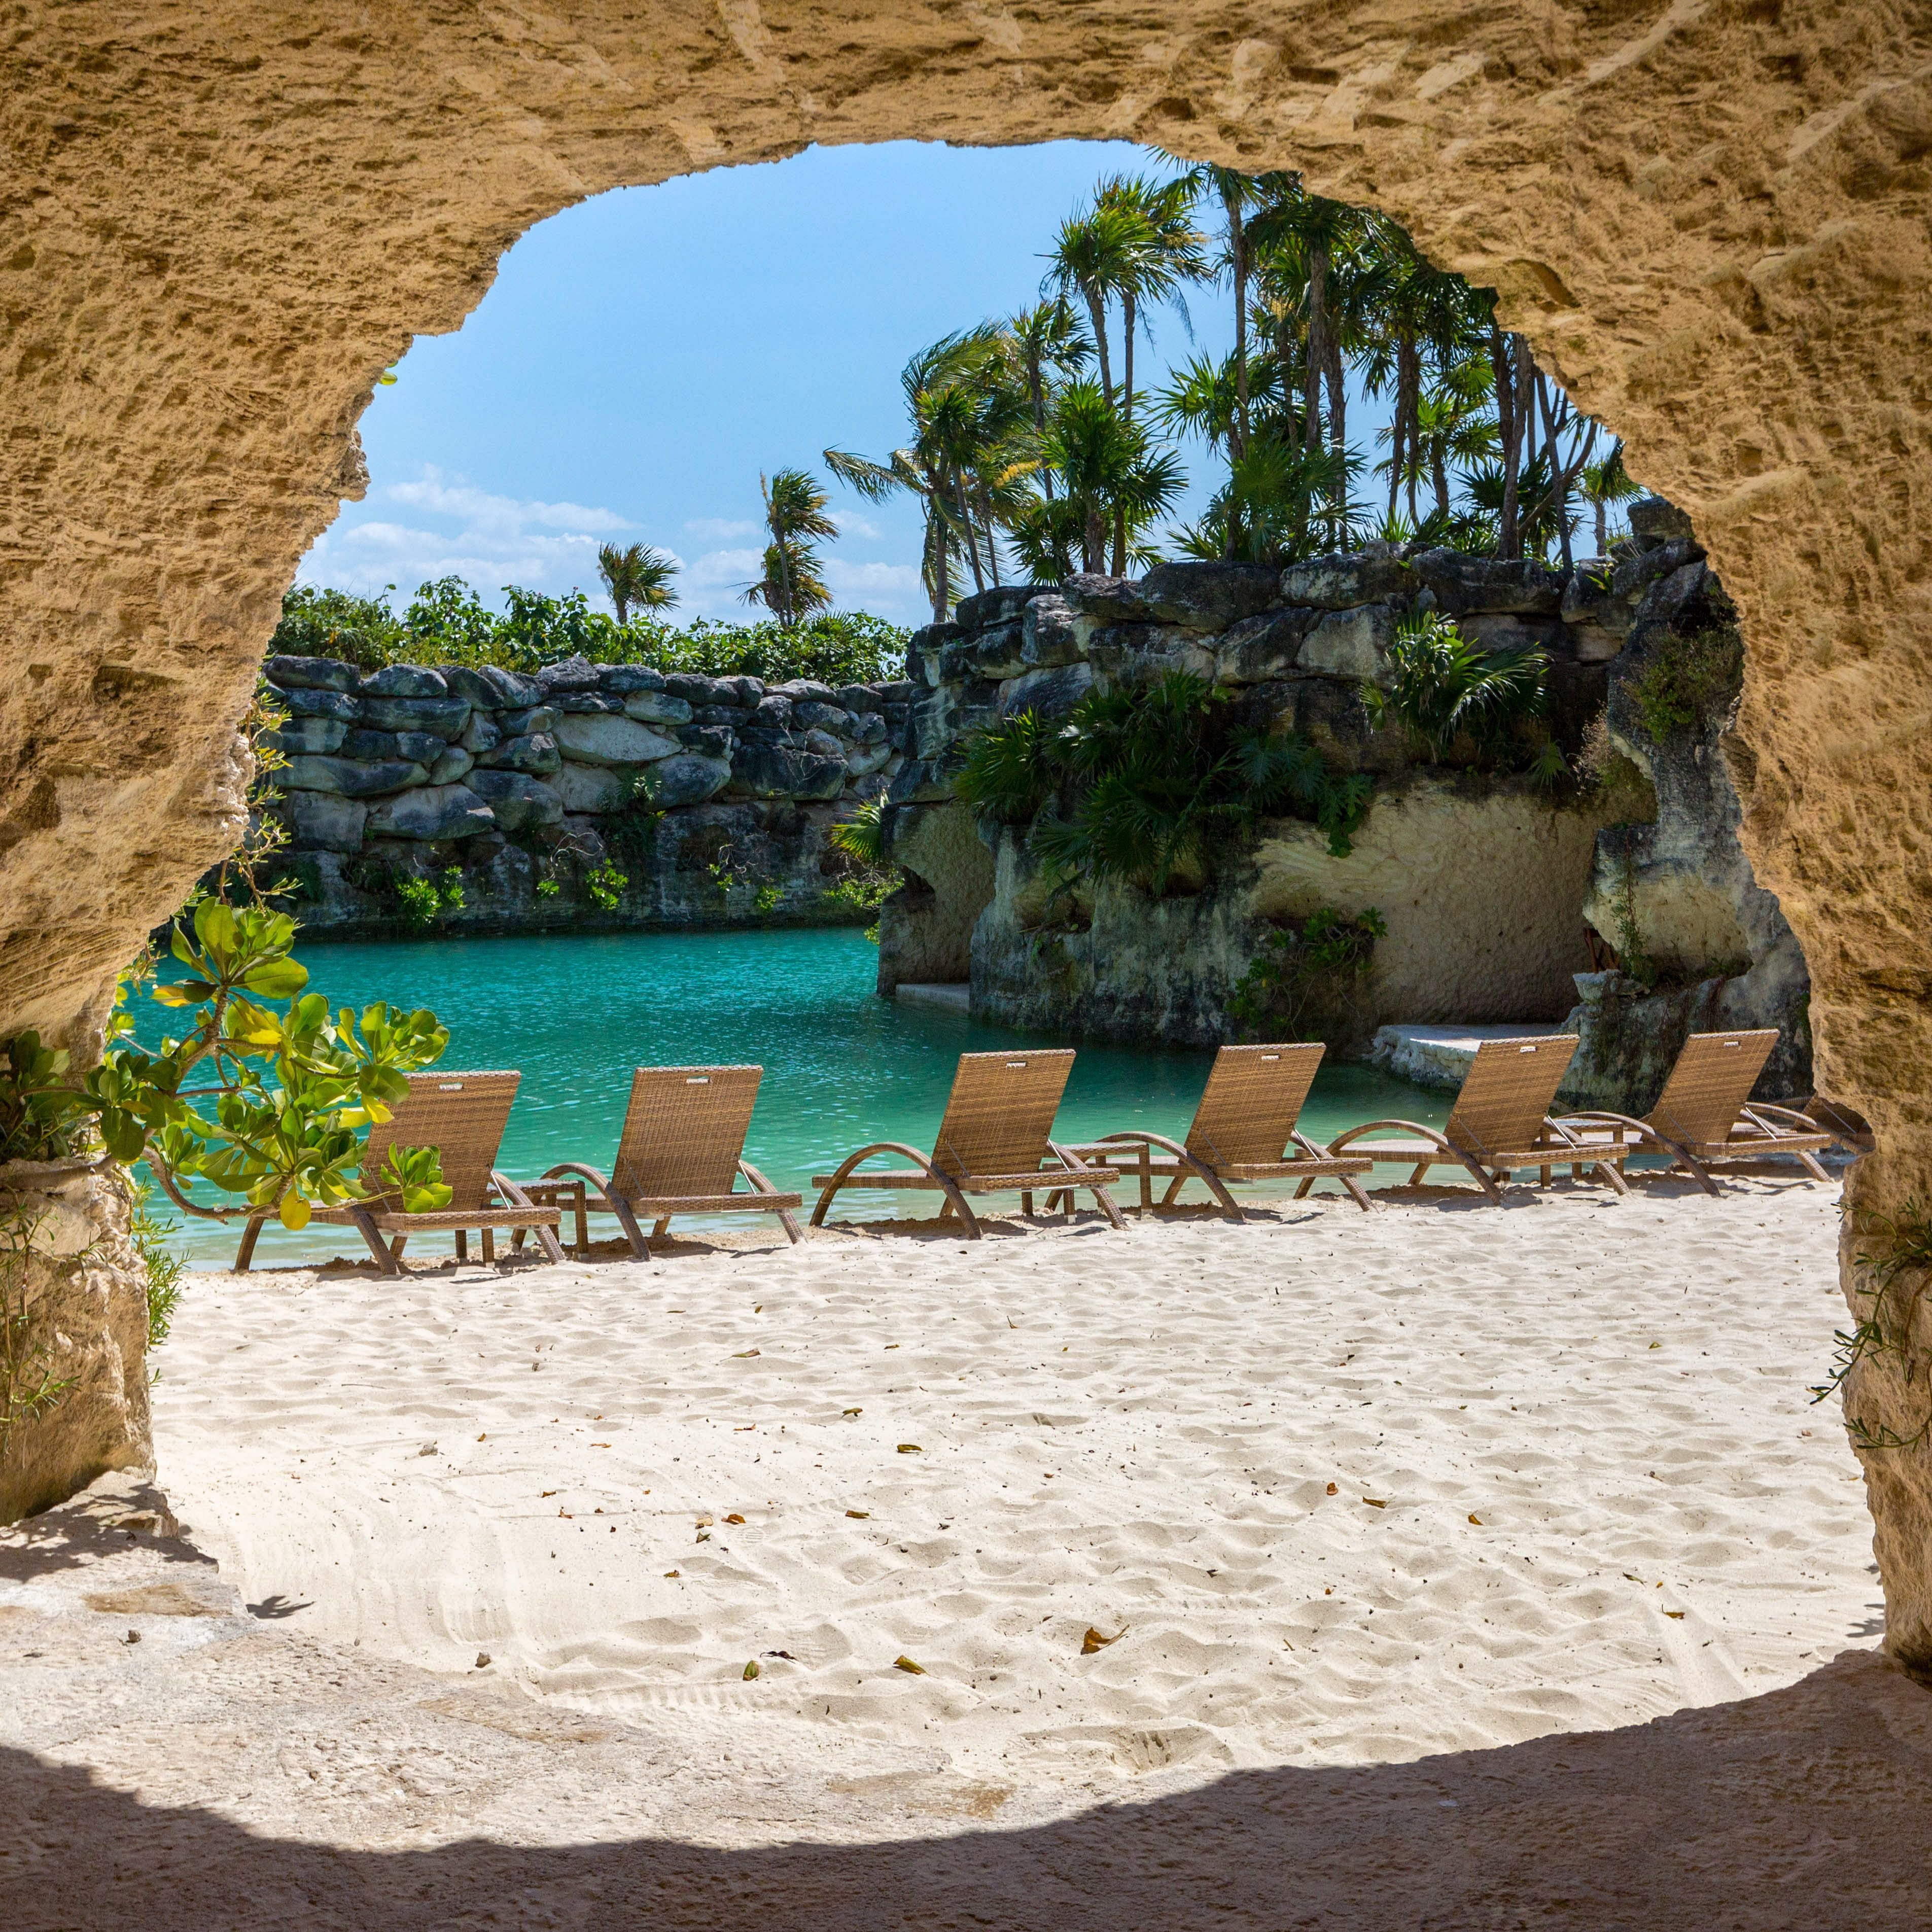 Hotel Xcaret Mexico Review What To Really Expect If You Stay